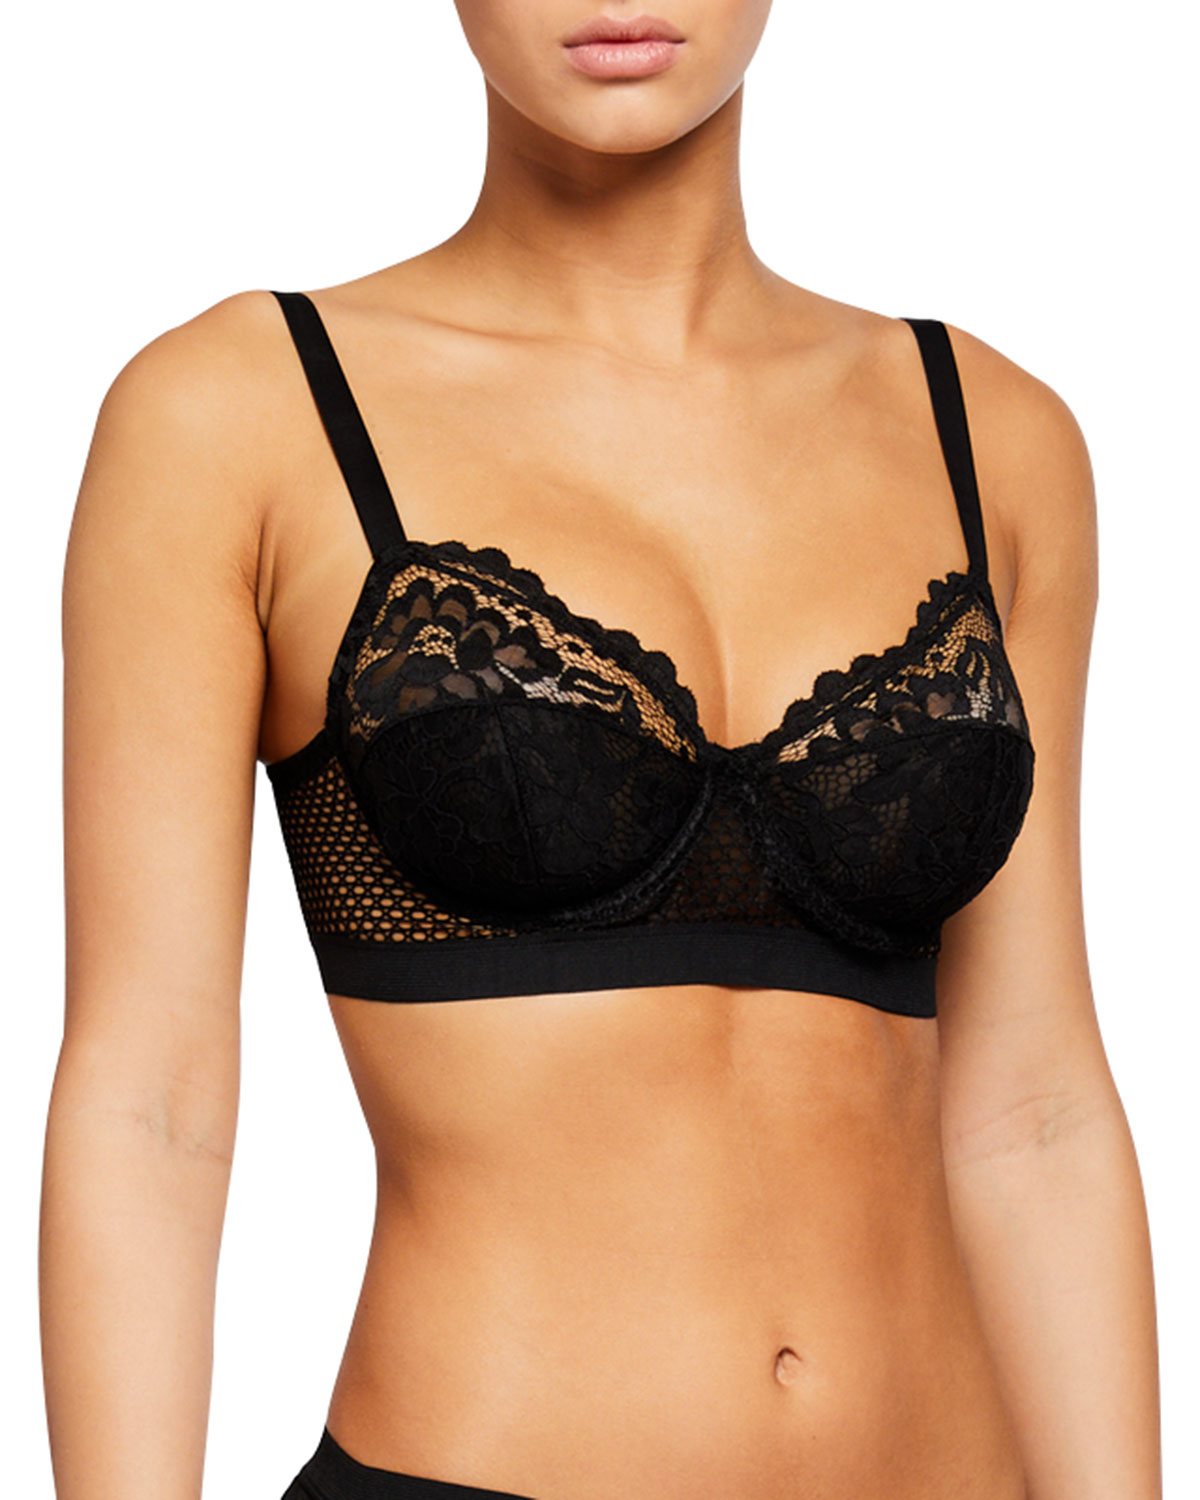 Else PETUNIA FULL-CUP UNDERWIRE BRA